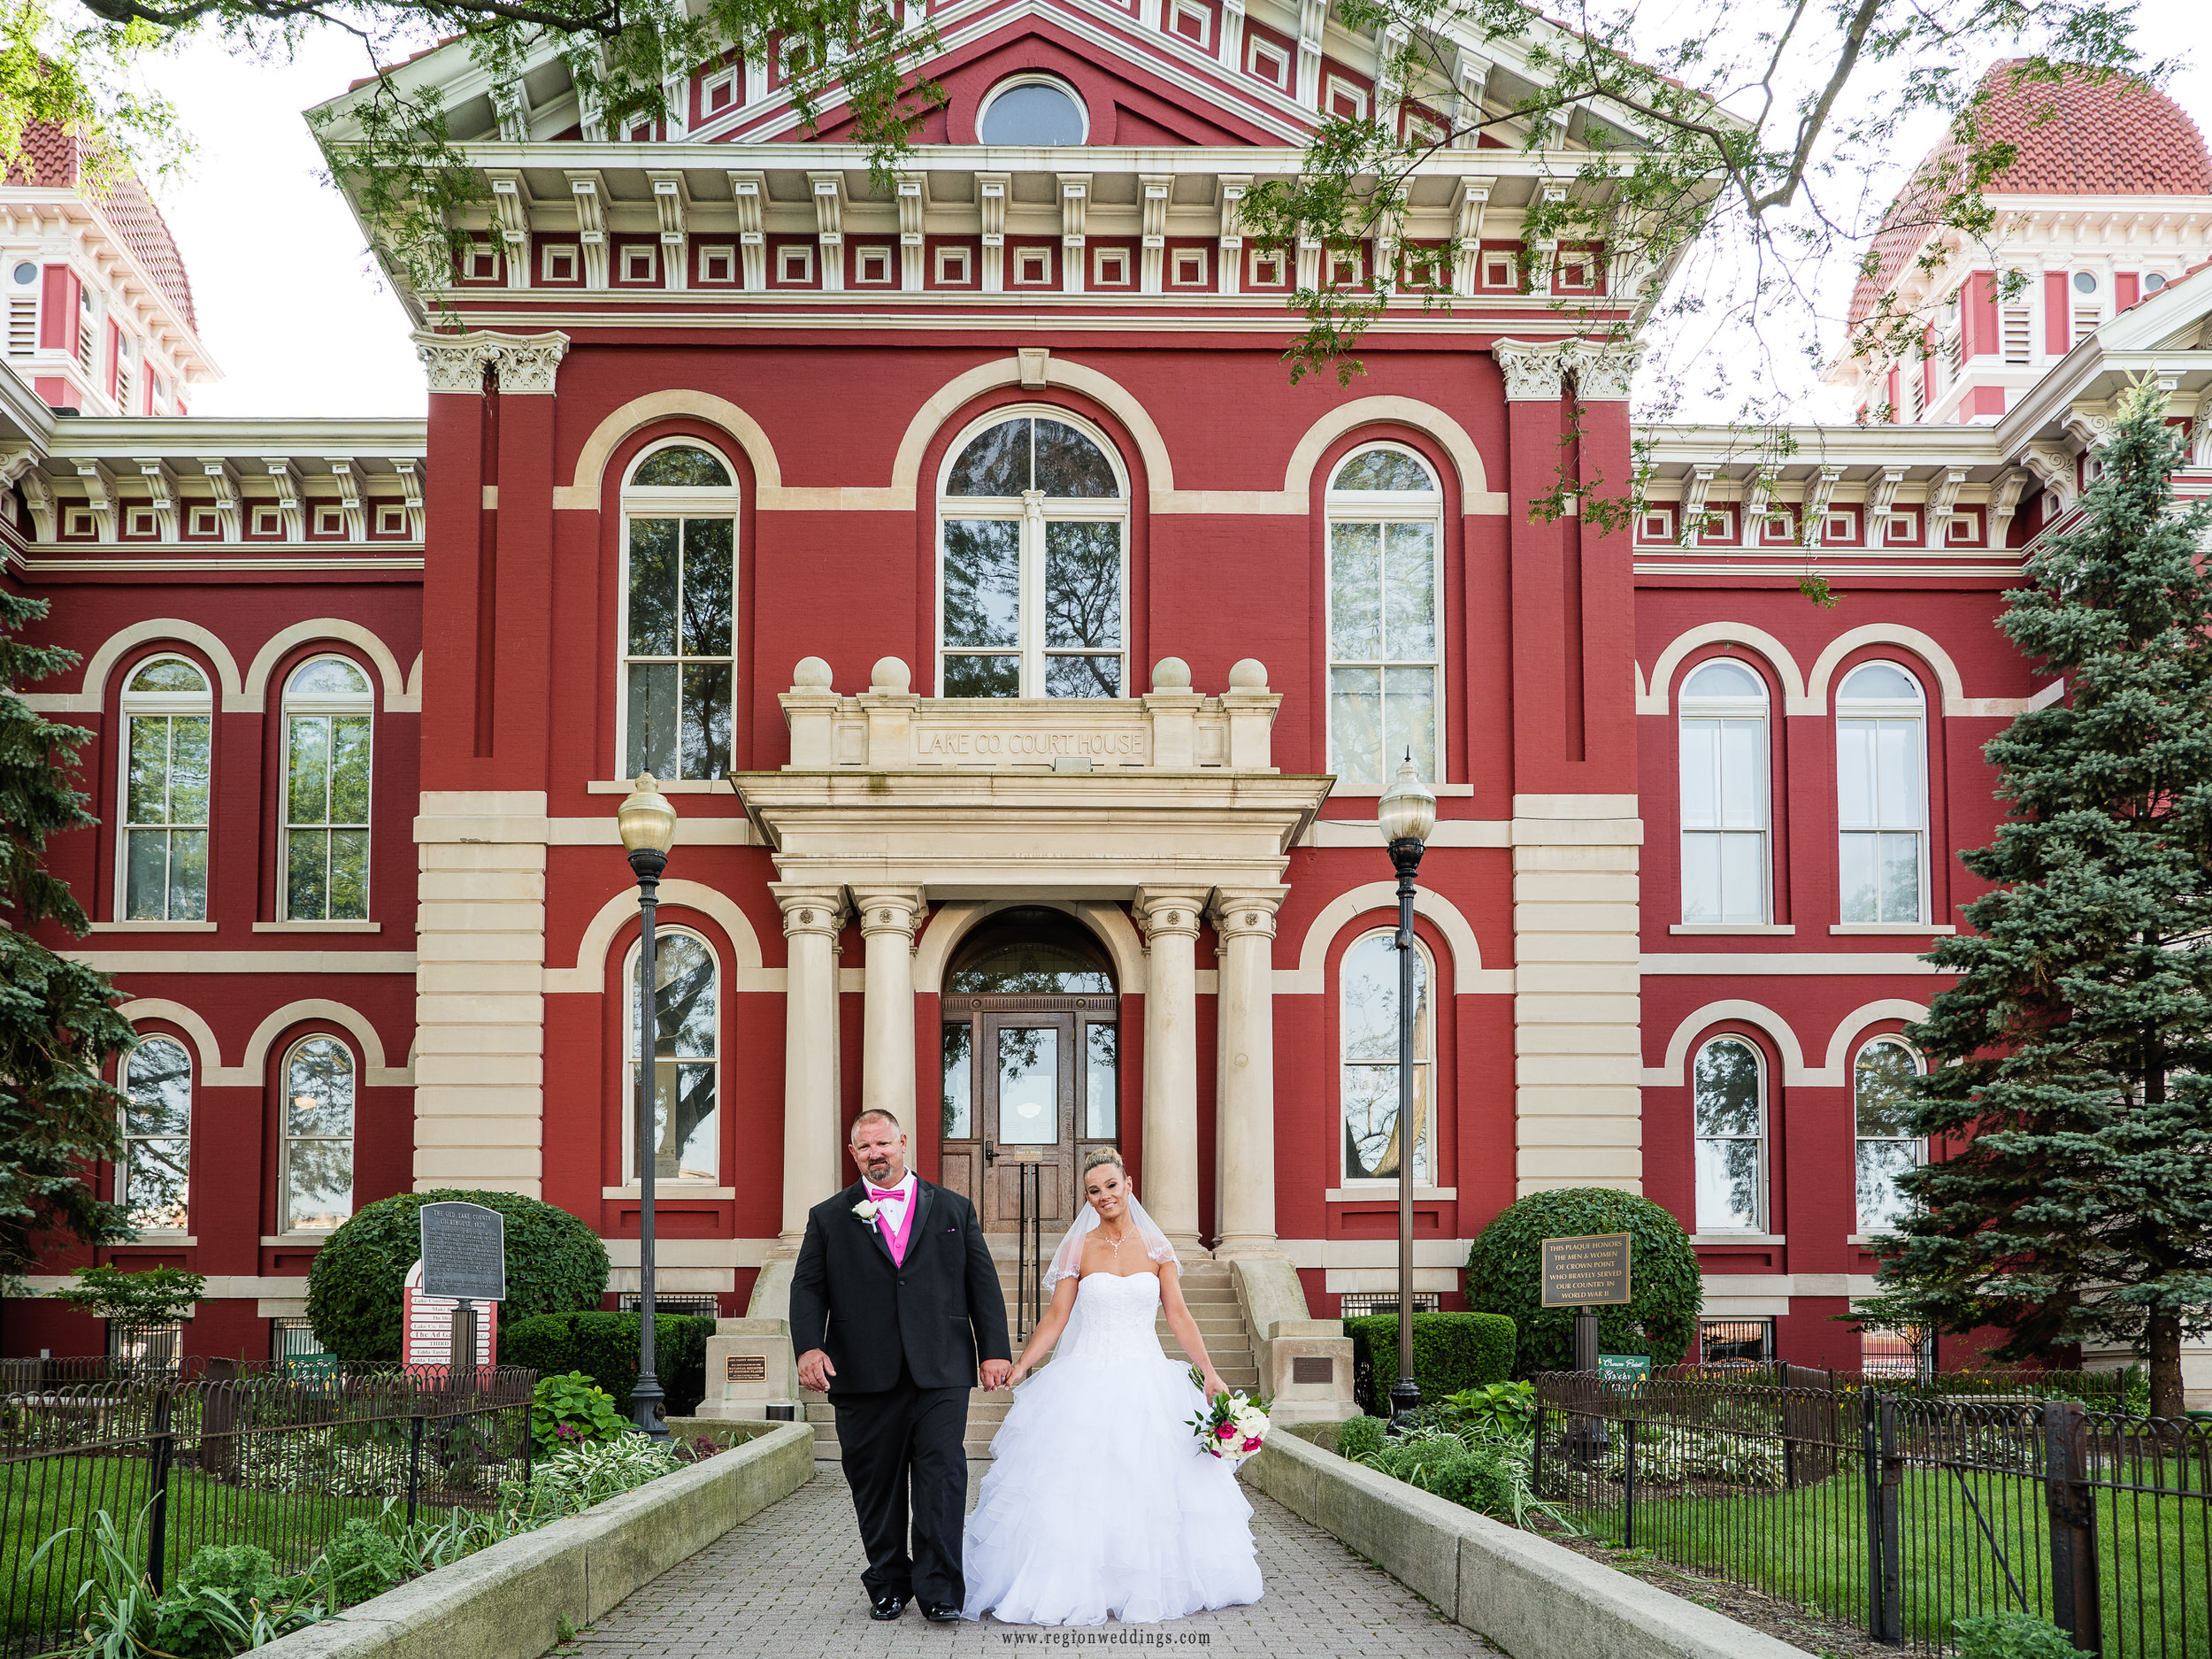 Bride and groom at the entrance of the historic Lake County Courthouse.